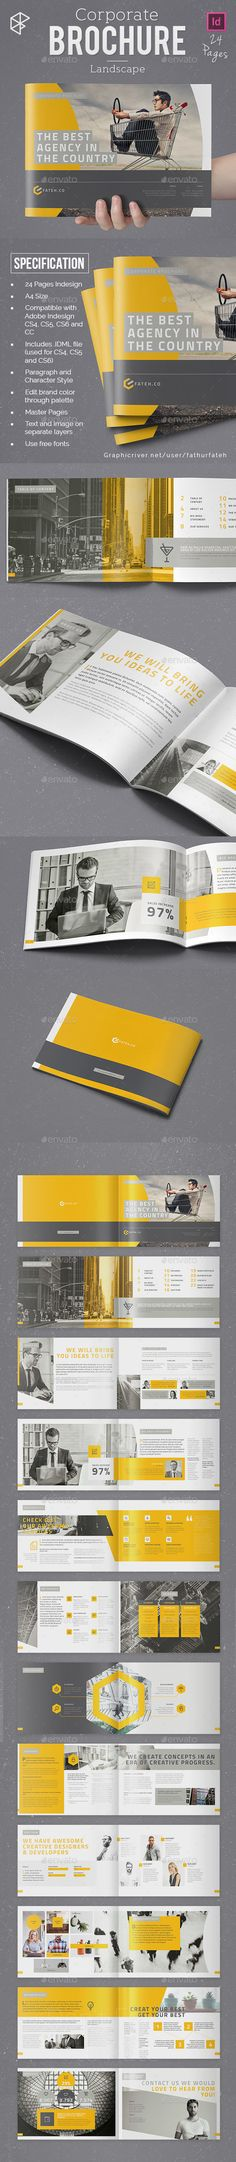 Landscape Corporate Brochure Template InDesign INDD